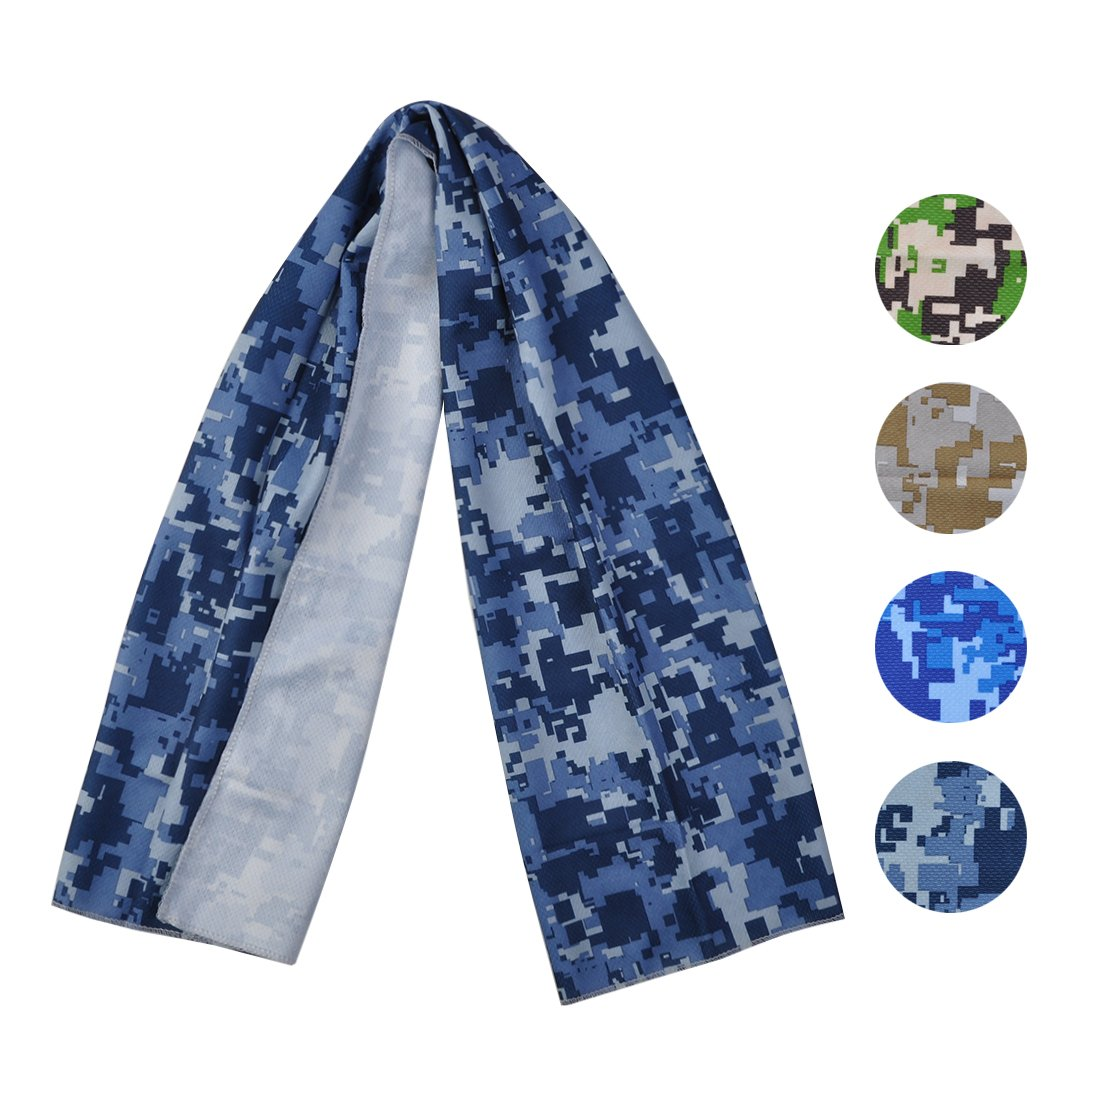 Cooling Towel for Sports, Workout, Fitness, Gym, Yoga, Pilates, Travel, Camping & More, Ice Cold, Camouflage, Multi Colors (CAM-Seablue)